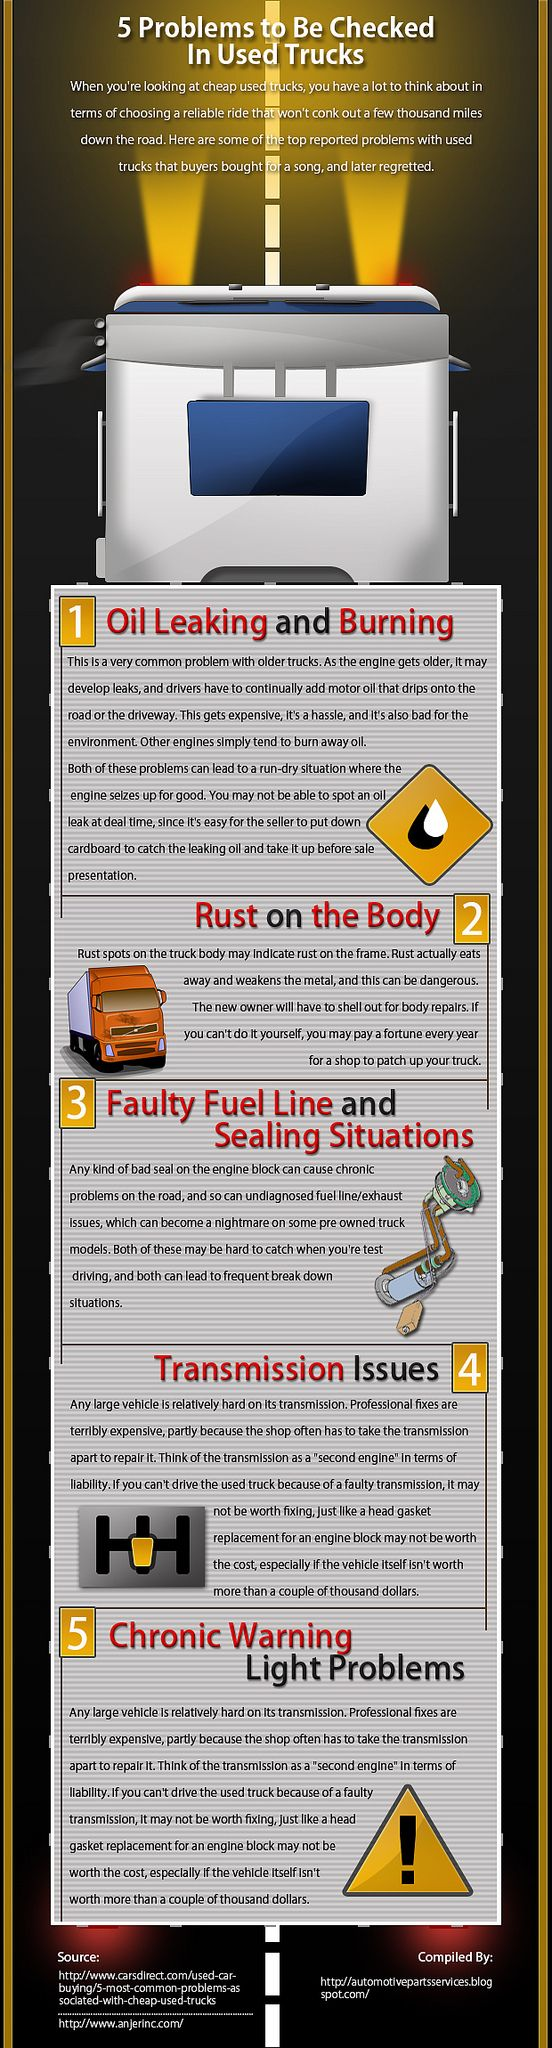 5 Problems to Be Checked In Used Trucks [Infographic]